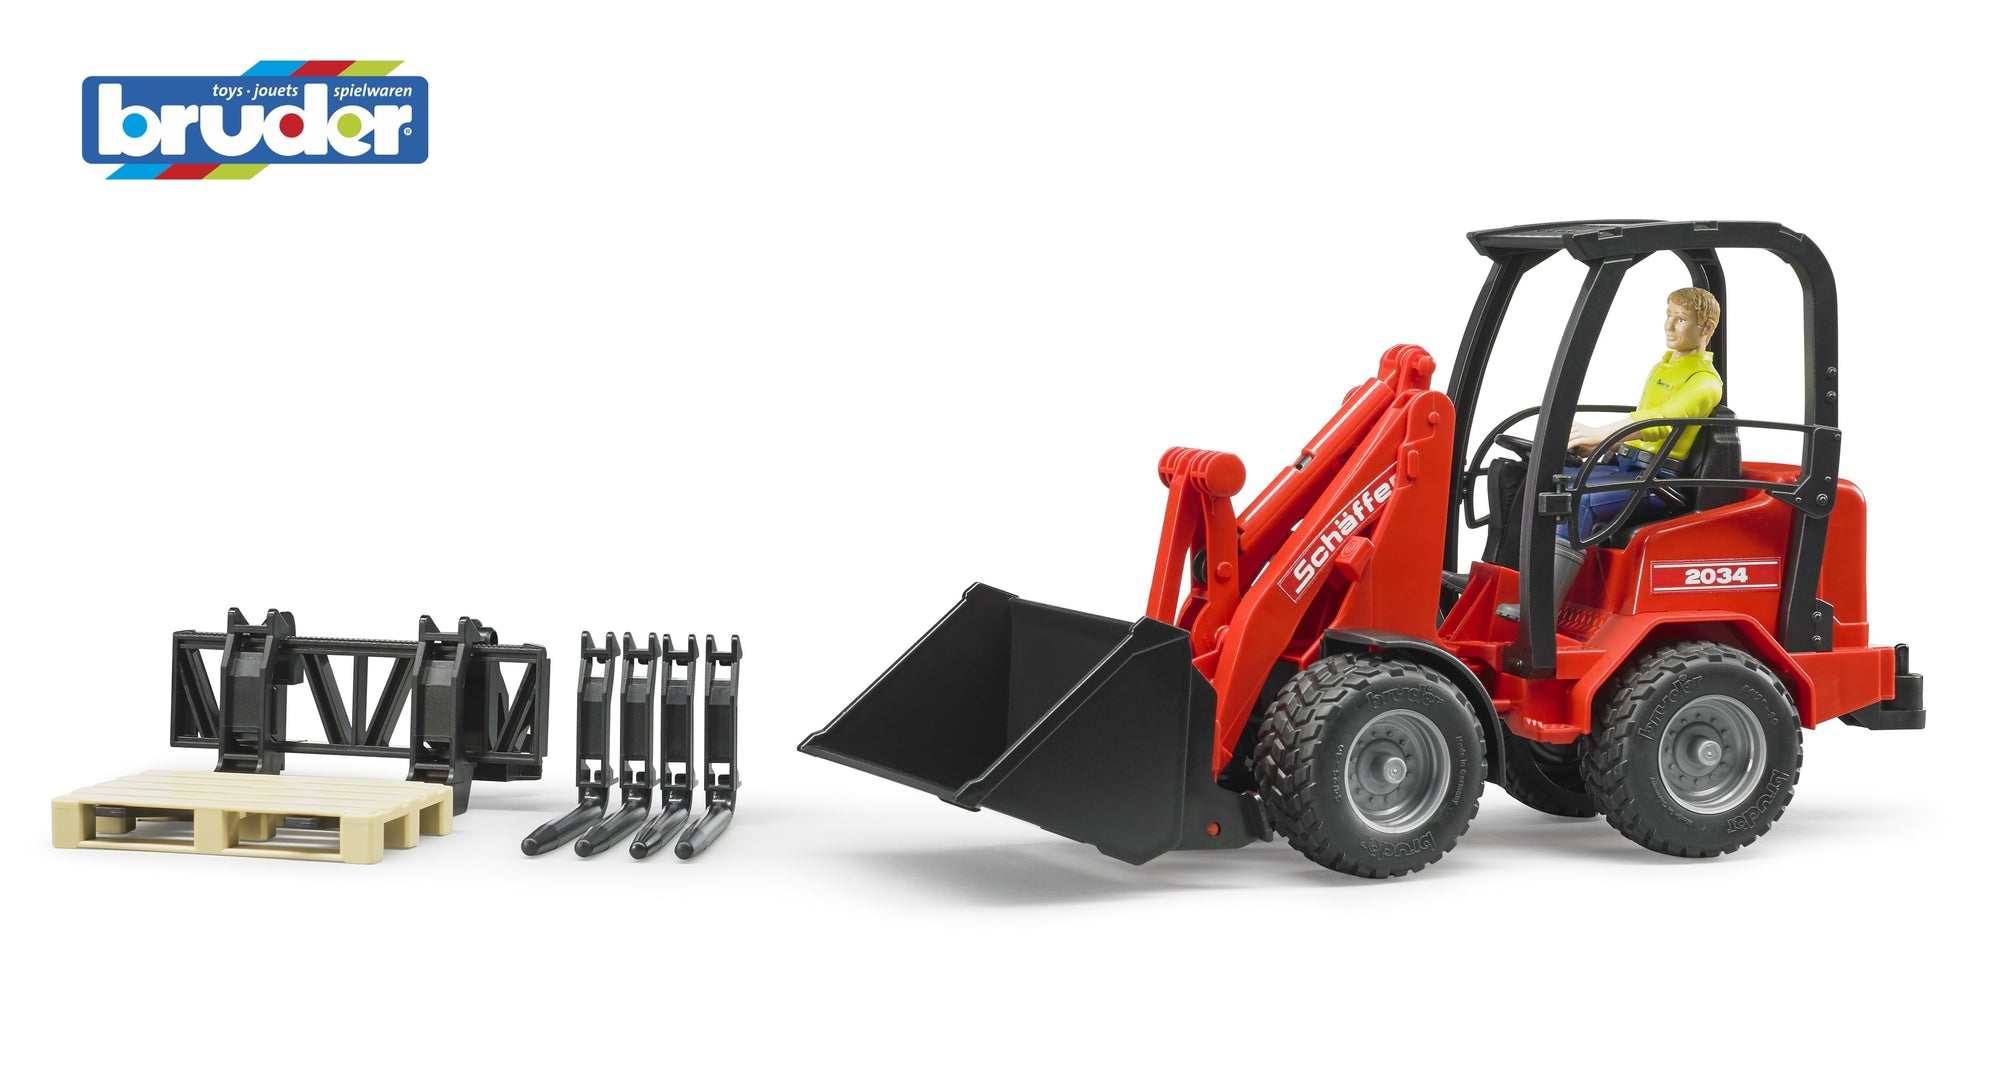 Shaffer compact Loader 2034 w/figure and acc 1:16 - Bruder